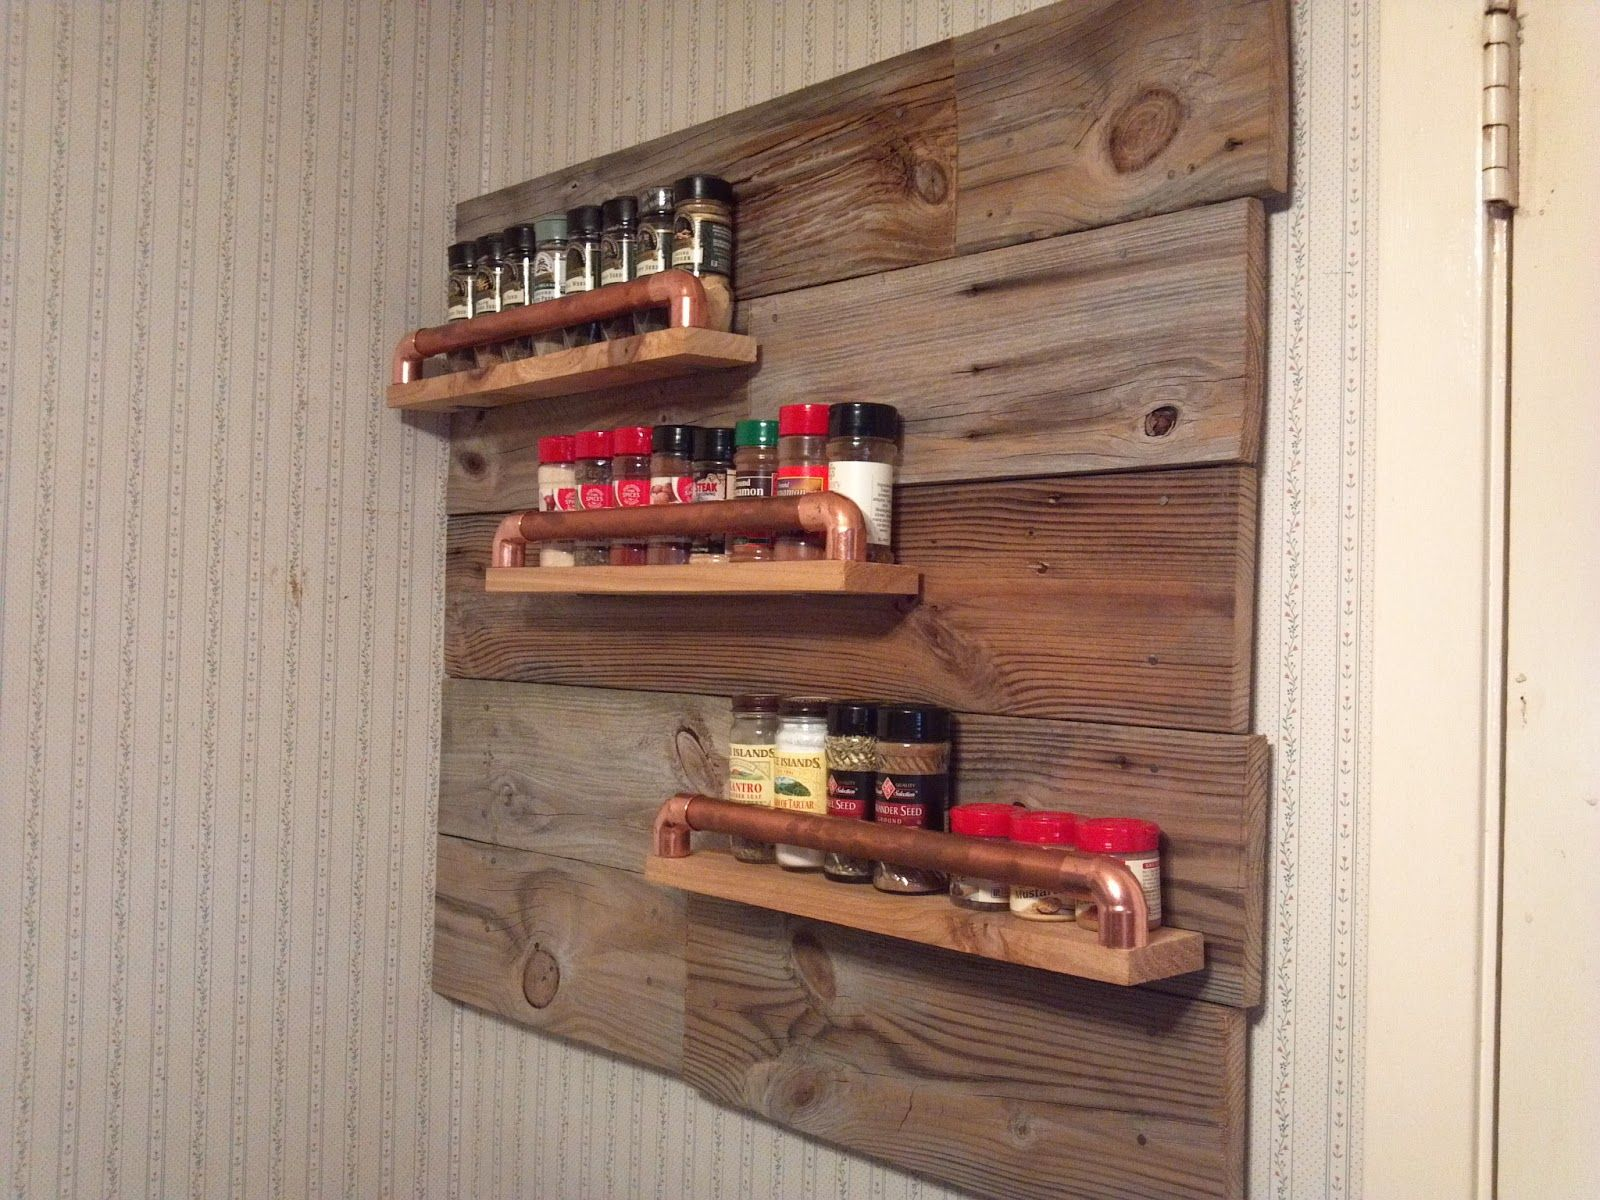 Spice Rack Ideas Rustic Spice Rack With Old Wood And Old Copper Pipe For The